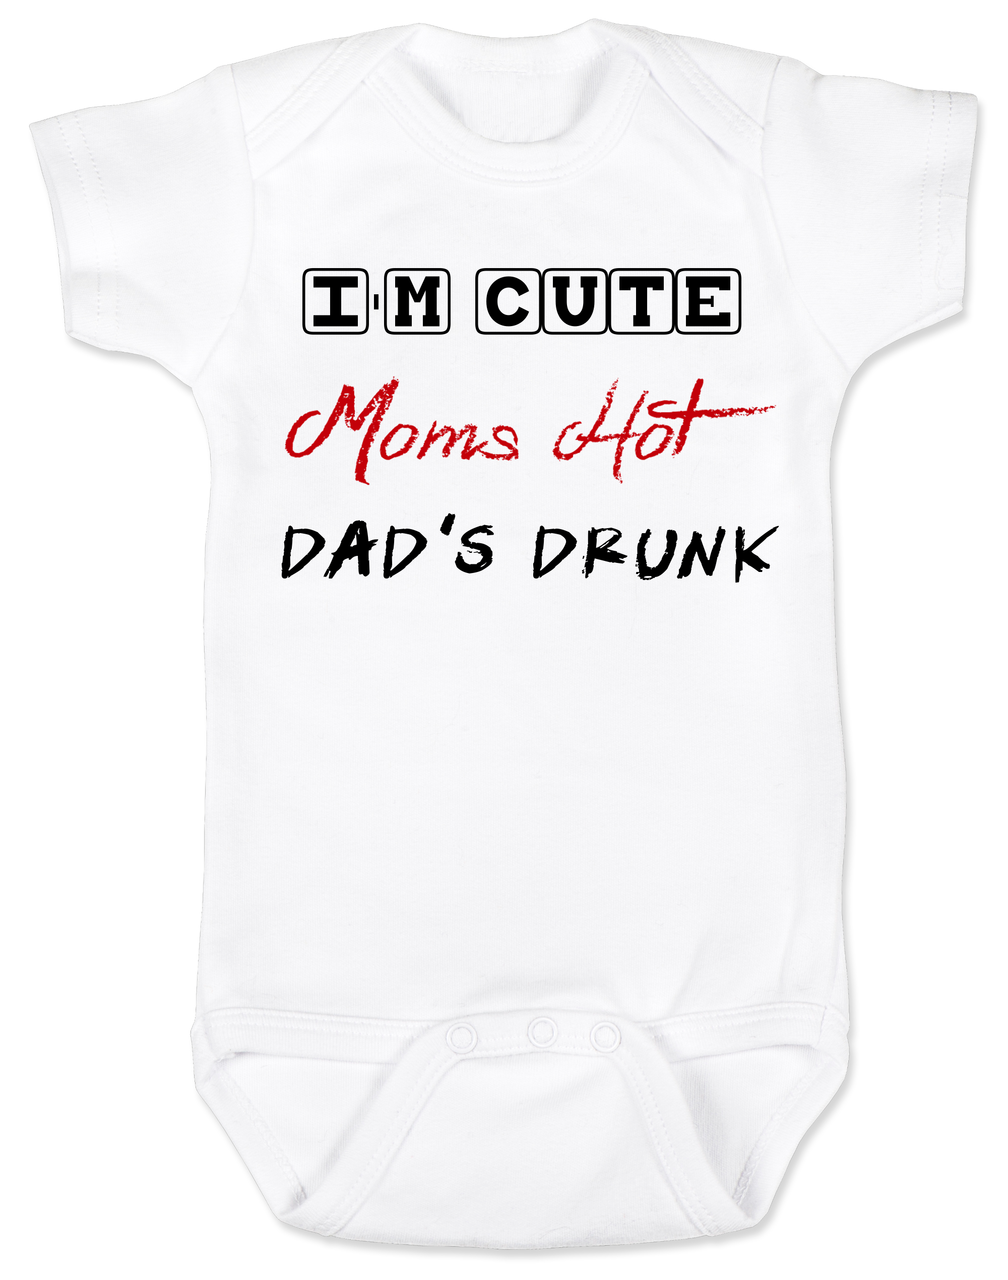 Dads Drunk Baby Bodysuit Im Cute Moms Hot Funny Dad Drinking